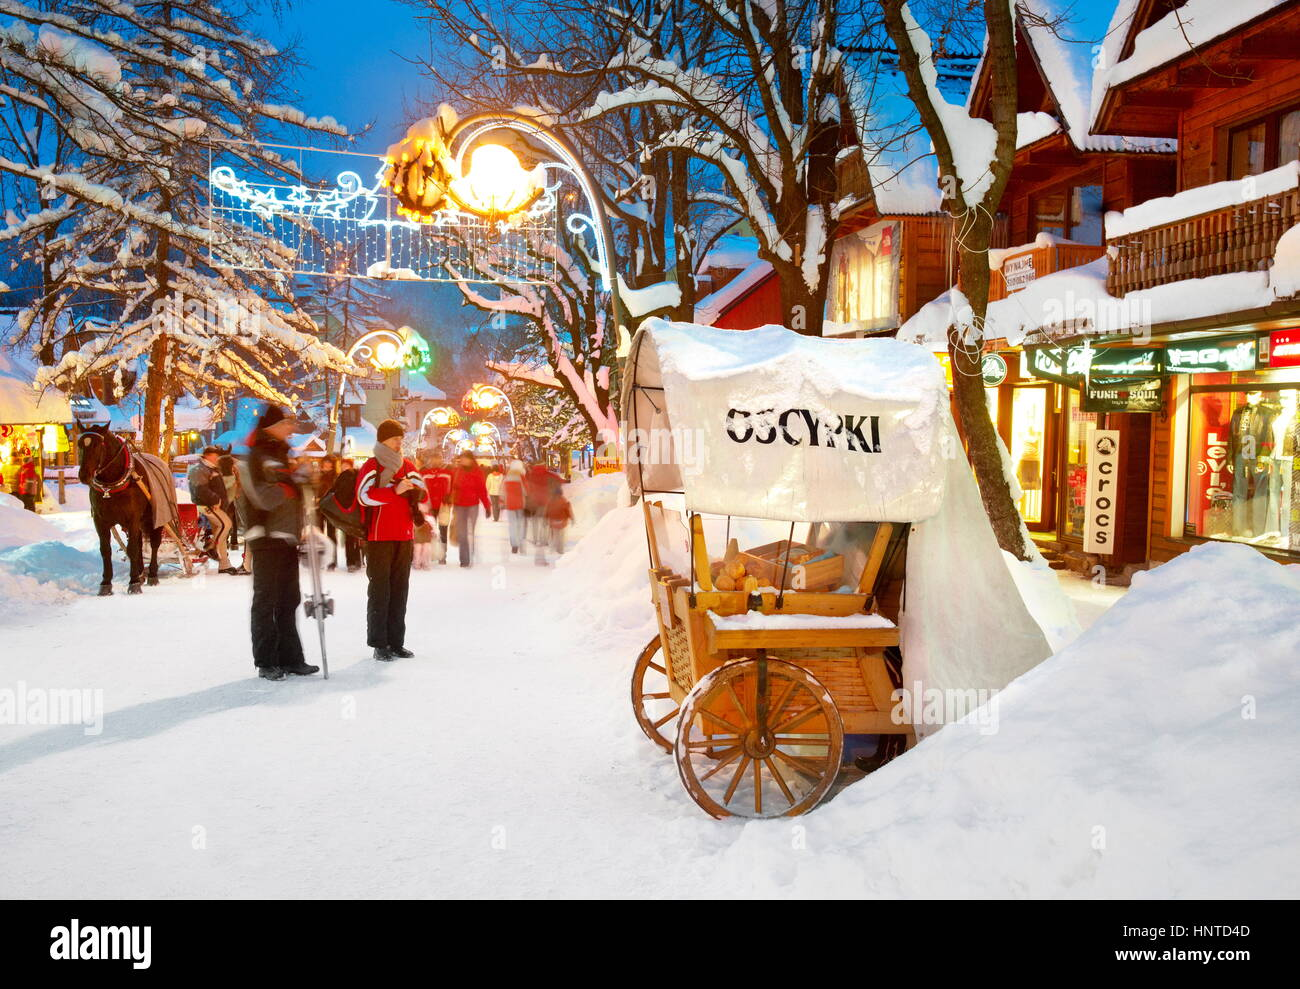 City scene d'hiver de Zakopane, Pologne Village Photo Stock